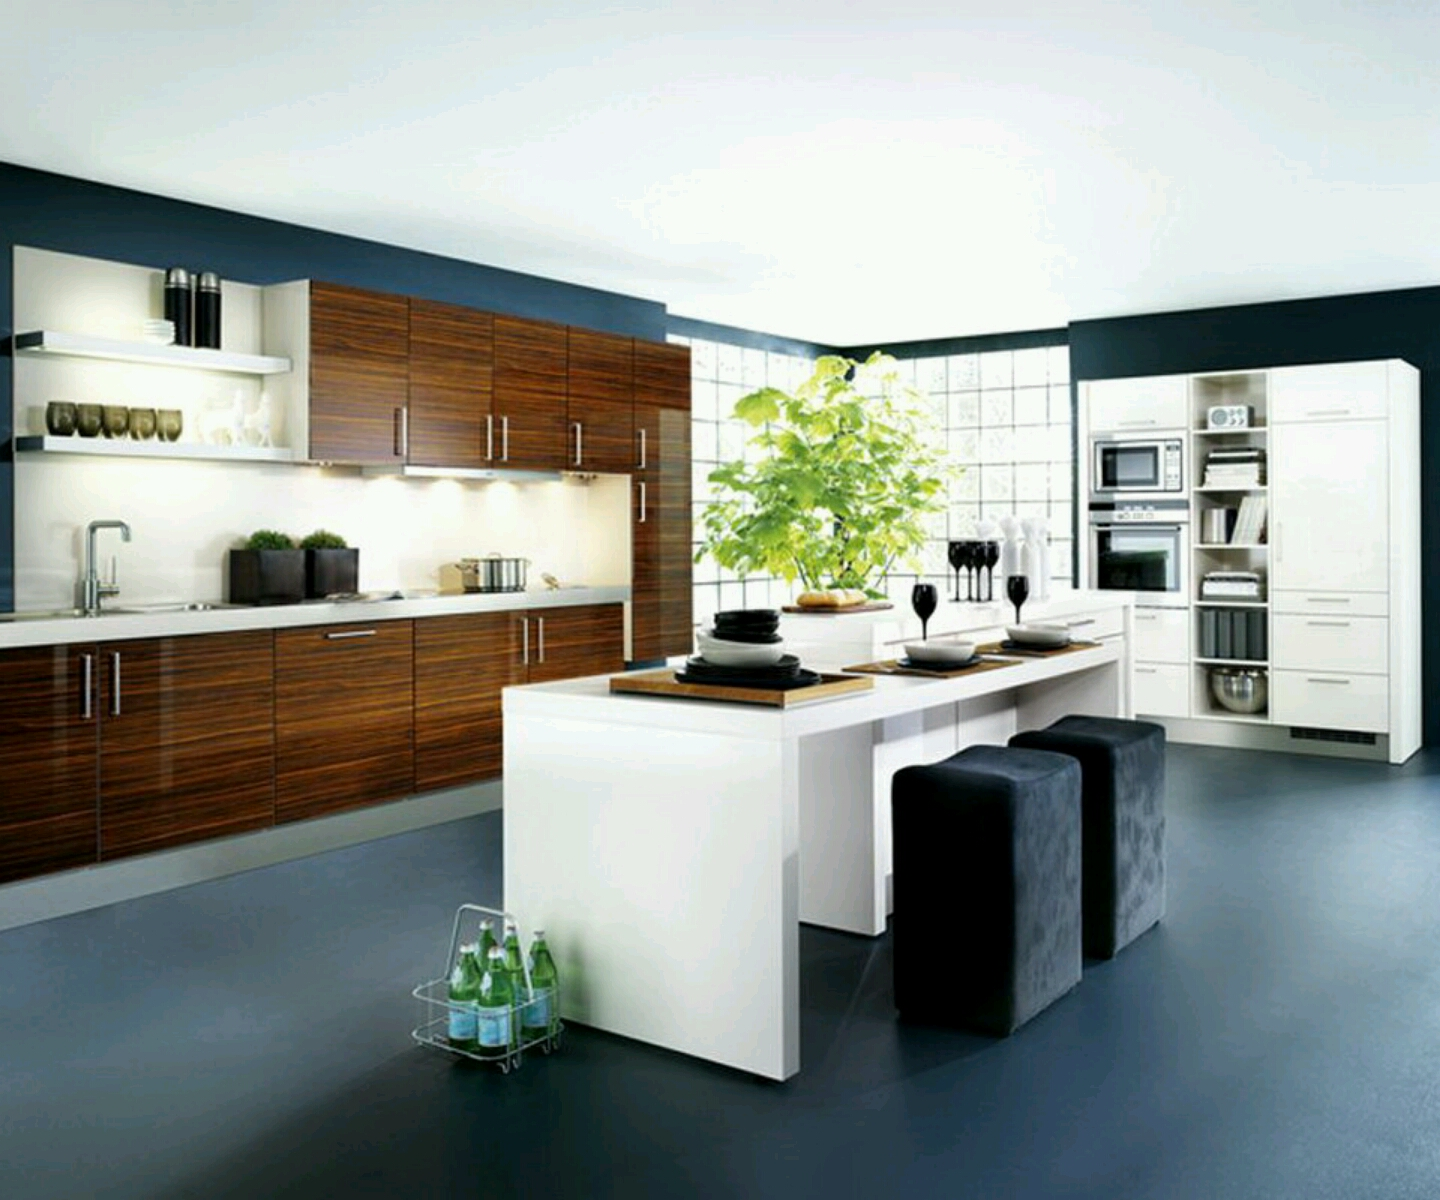 New home designs latest kitchen cabinets designs modern homes - Kitchen door designs ...